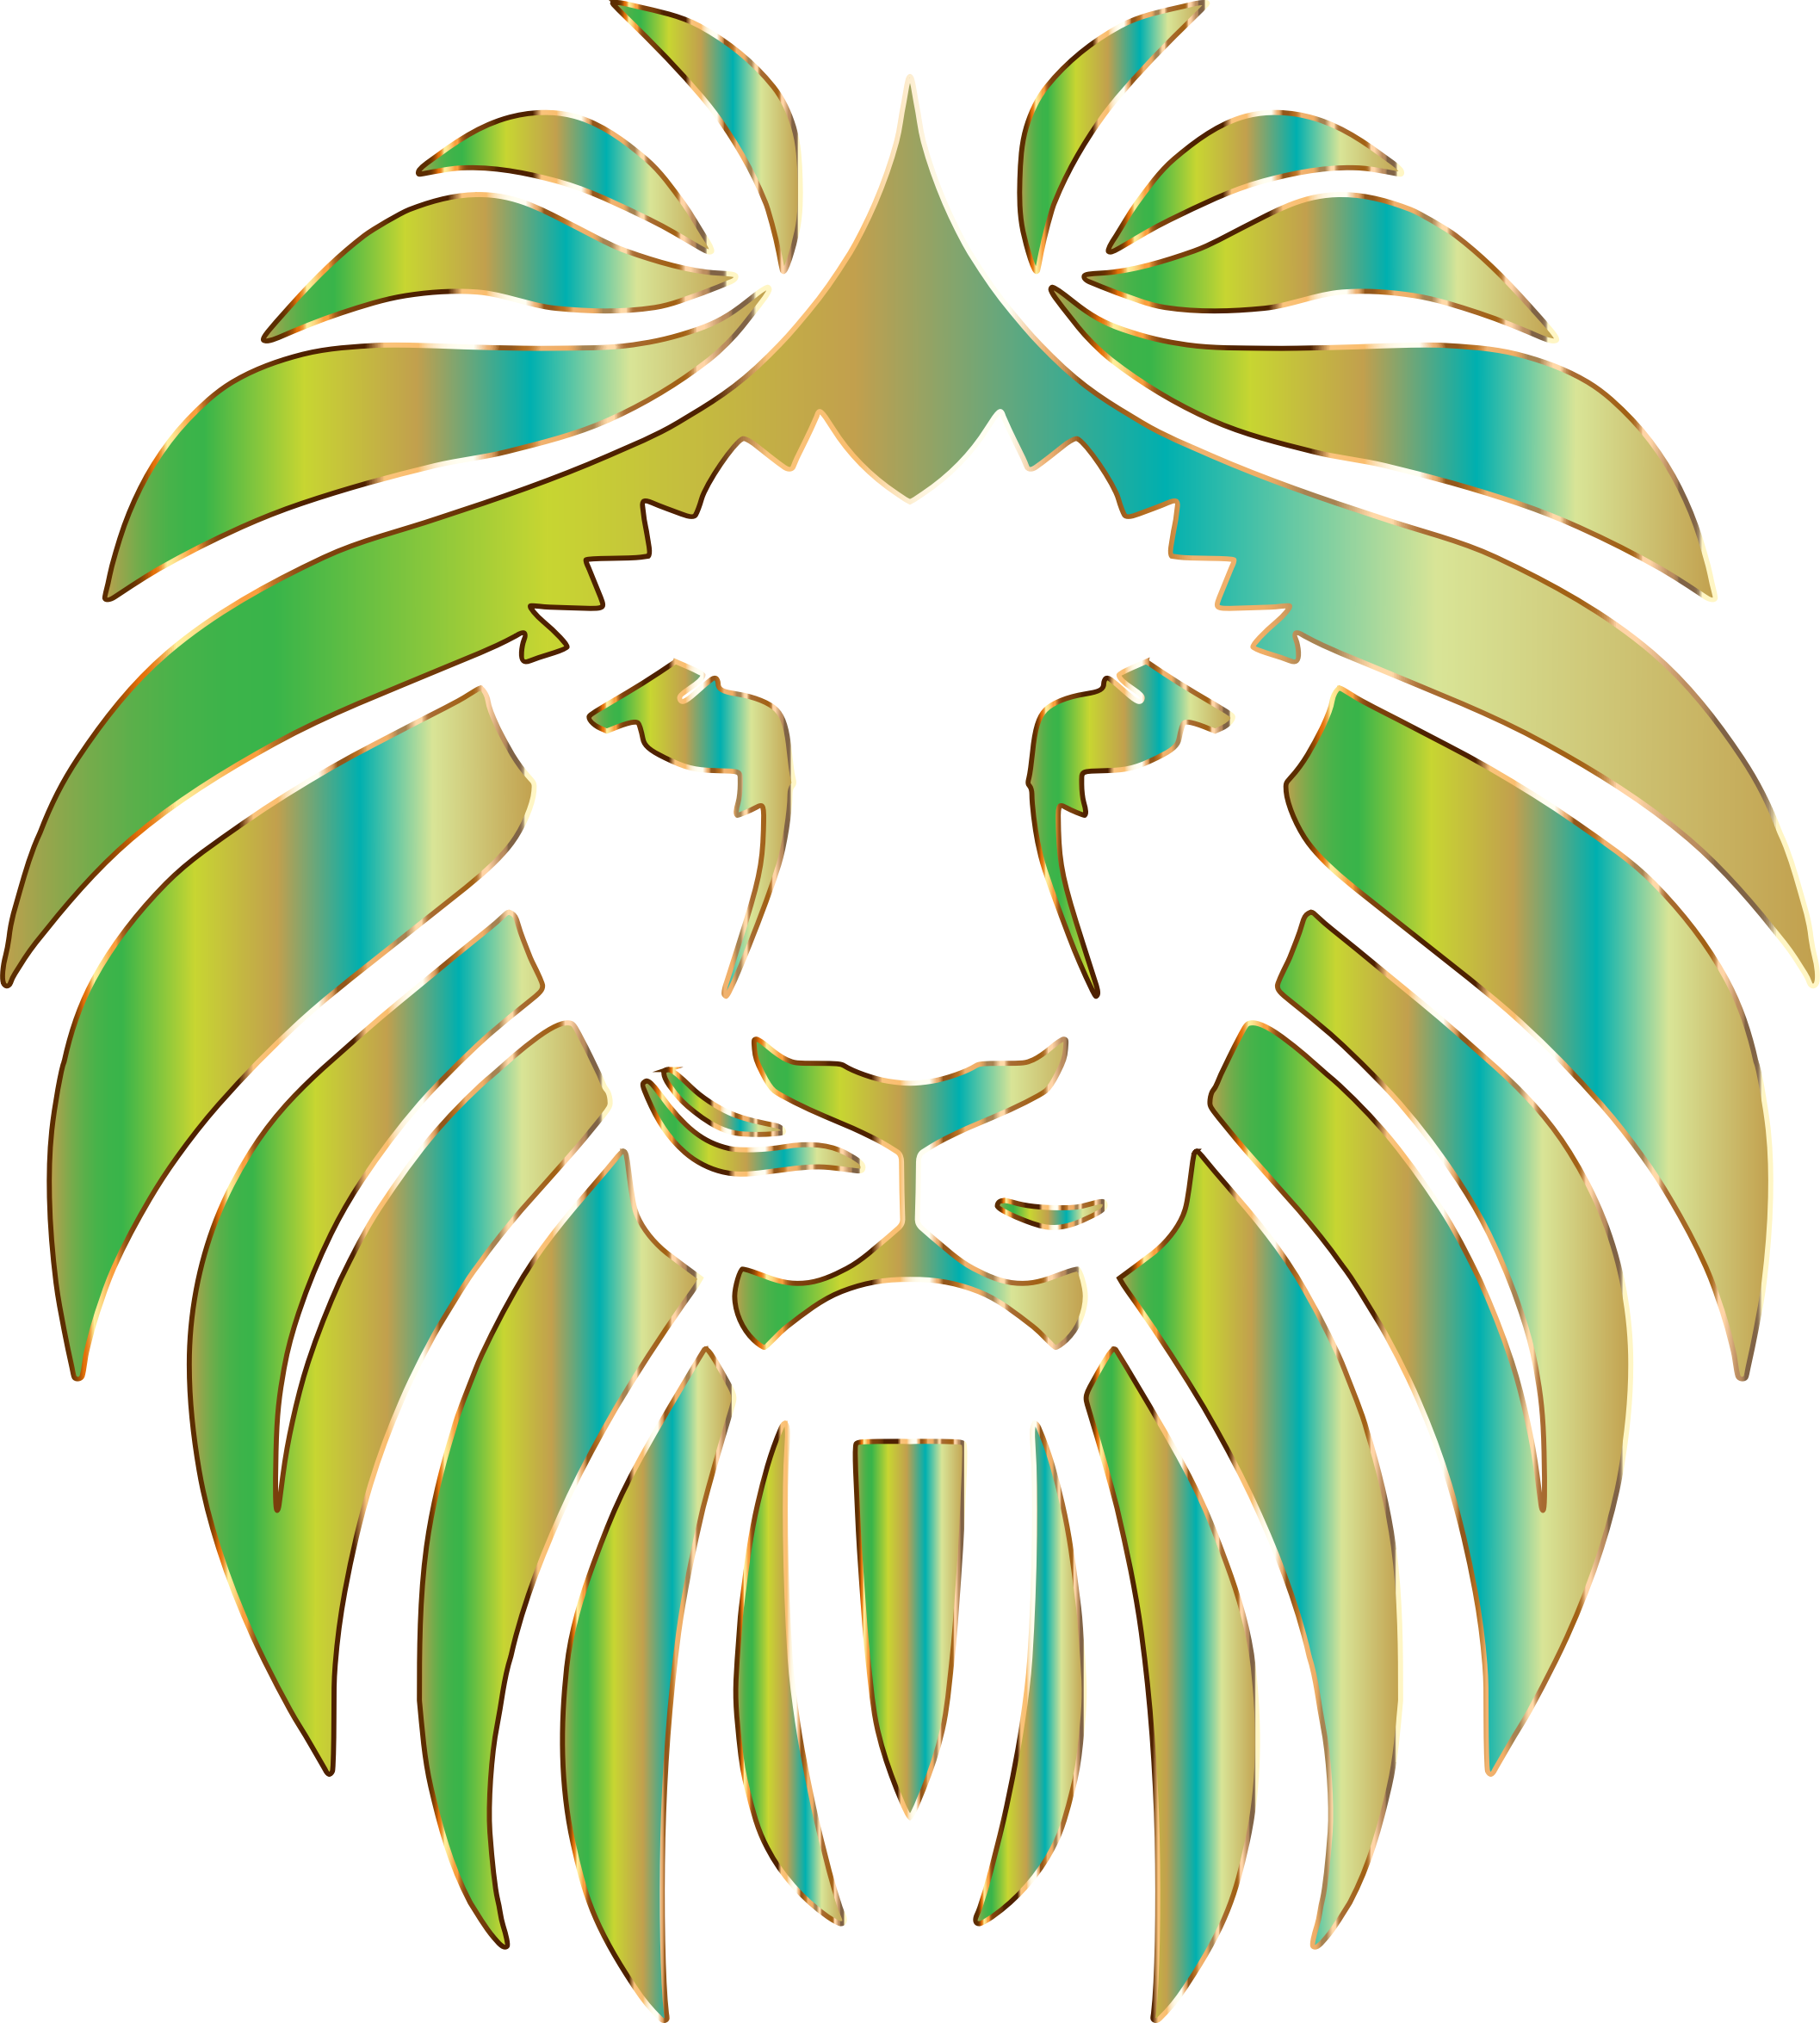 Prismatic Lion 7 No Background by GDJ